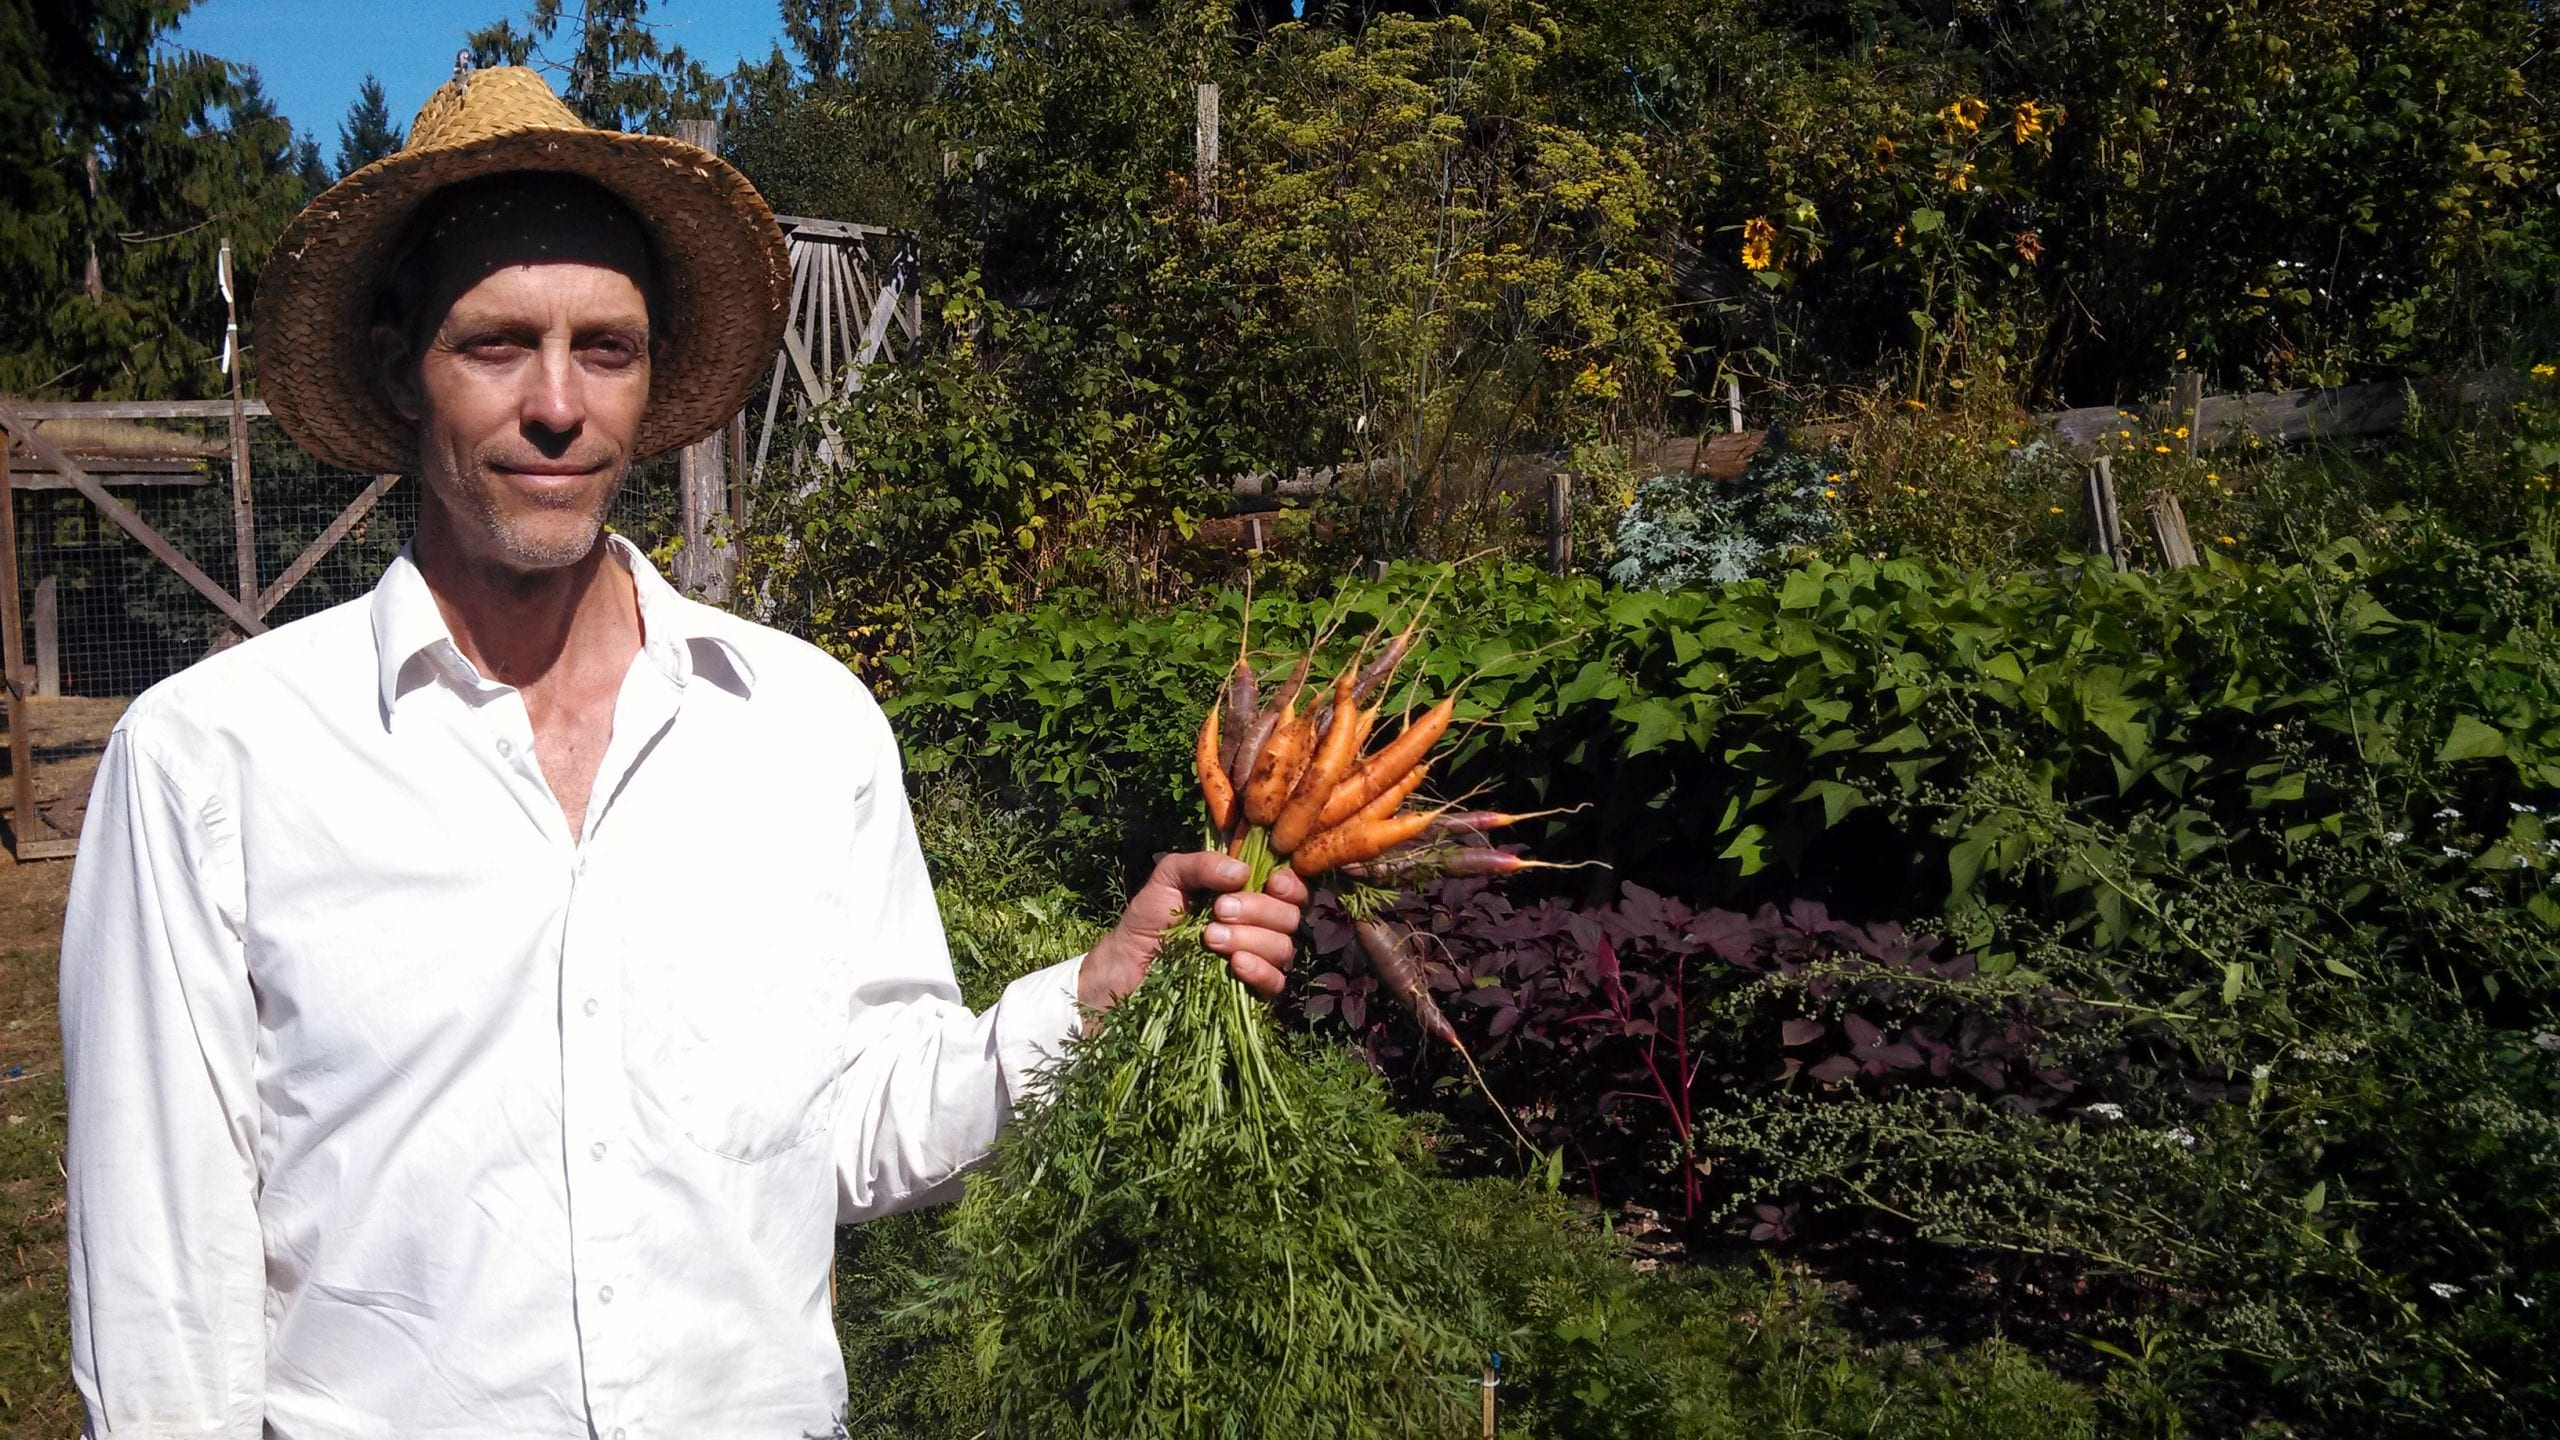 Man holding freshly picked carrots in a garden